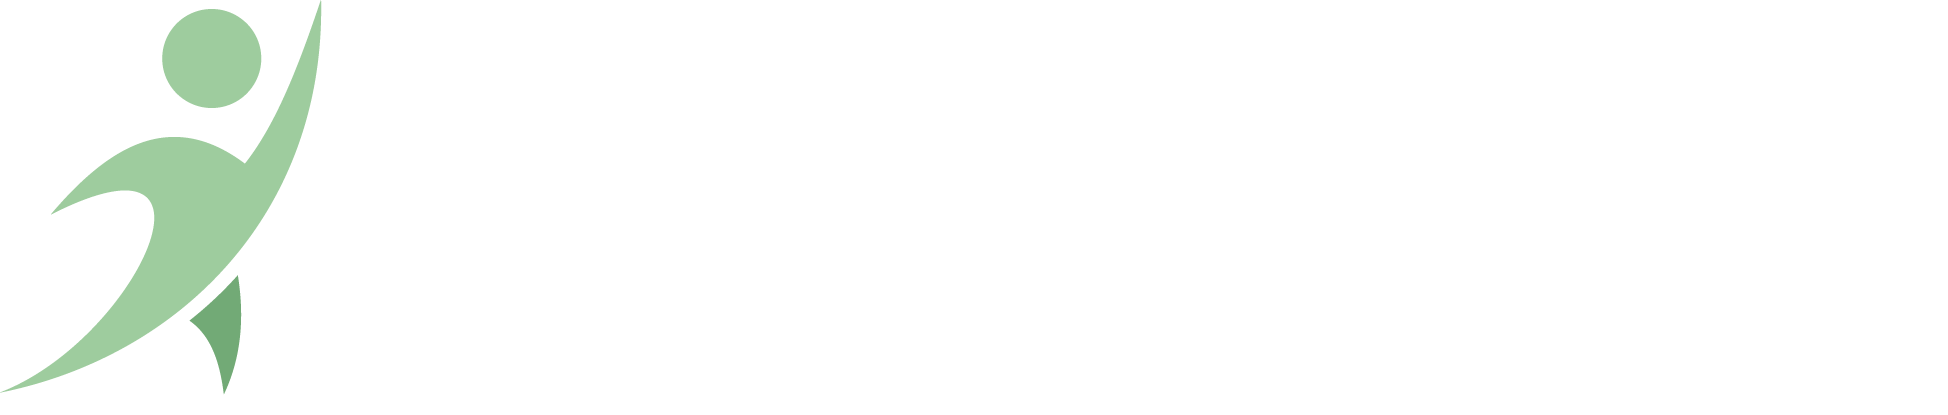 Fairview Chiropractic And Rehabilitation Clinic